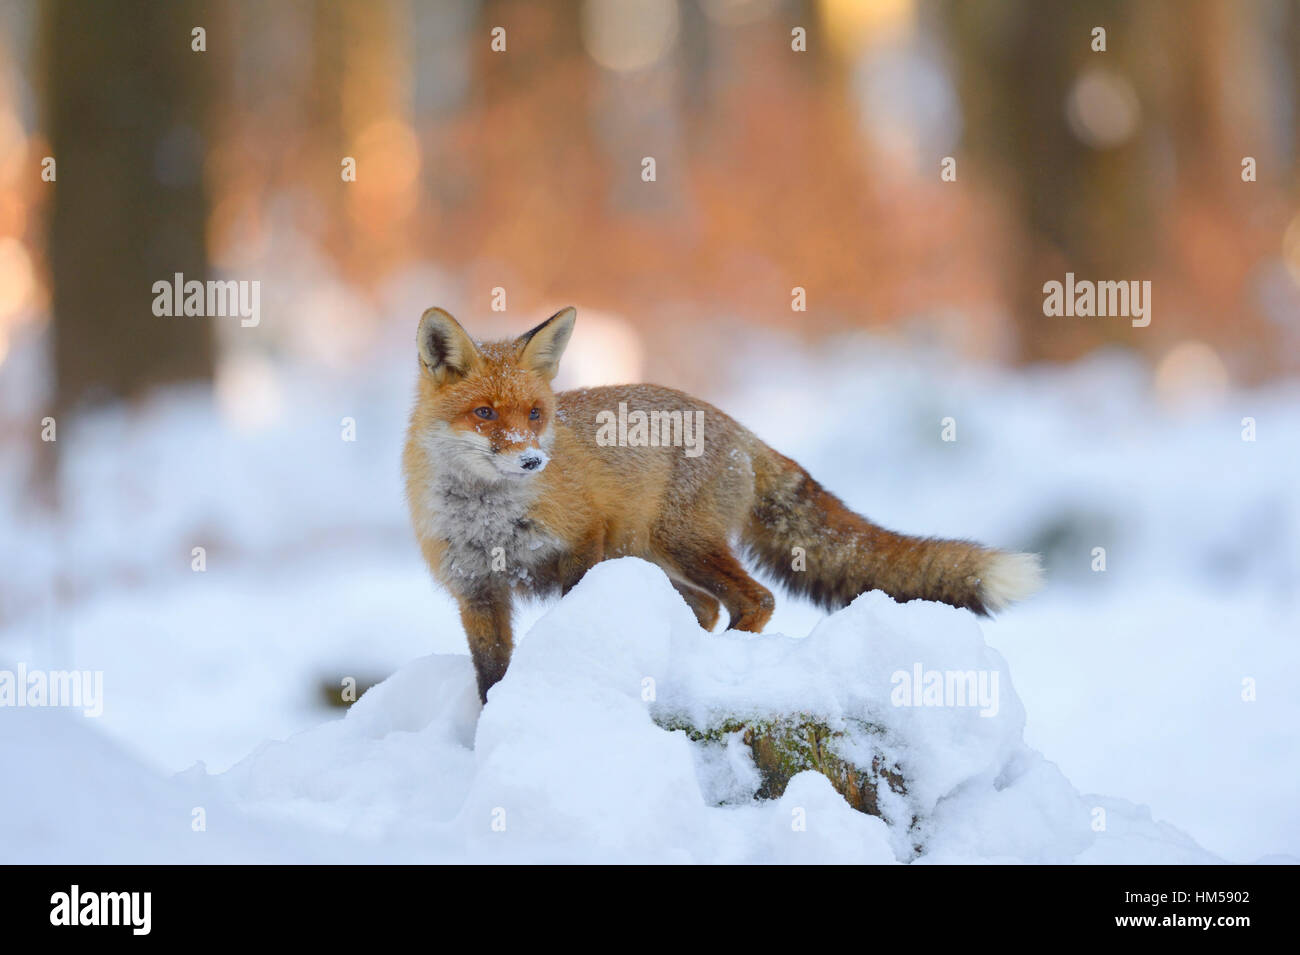 Red fox (Vulpes vulpes) standing on a snow-covered tree trunk, sunset light, Bohemian Forest, Czech Republic - Stock Image